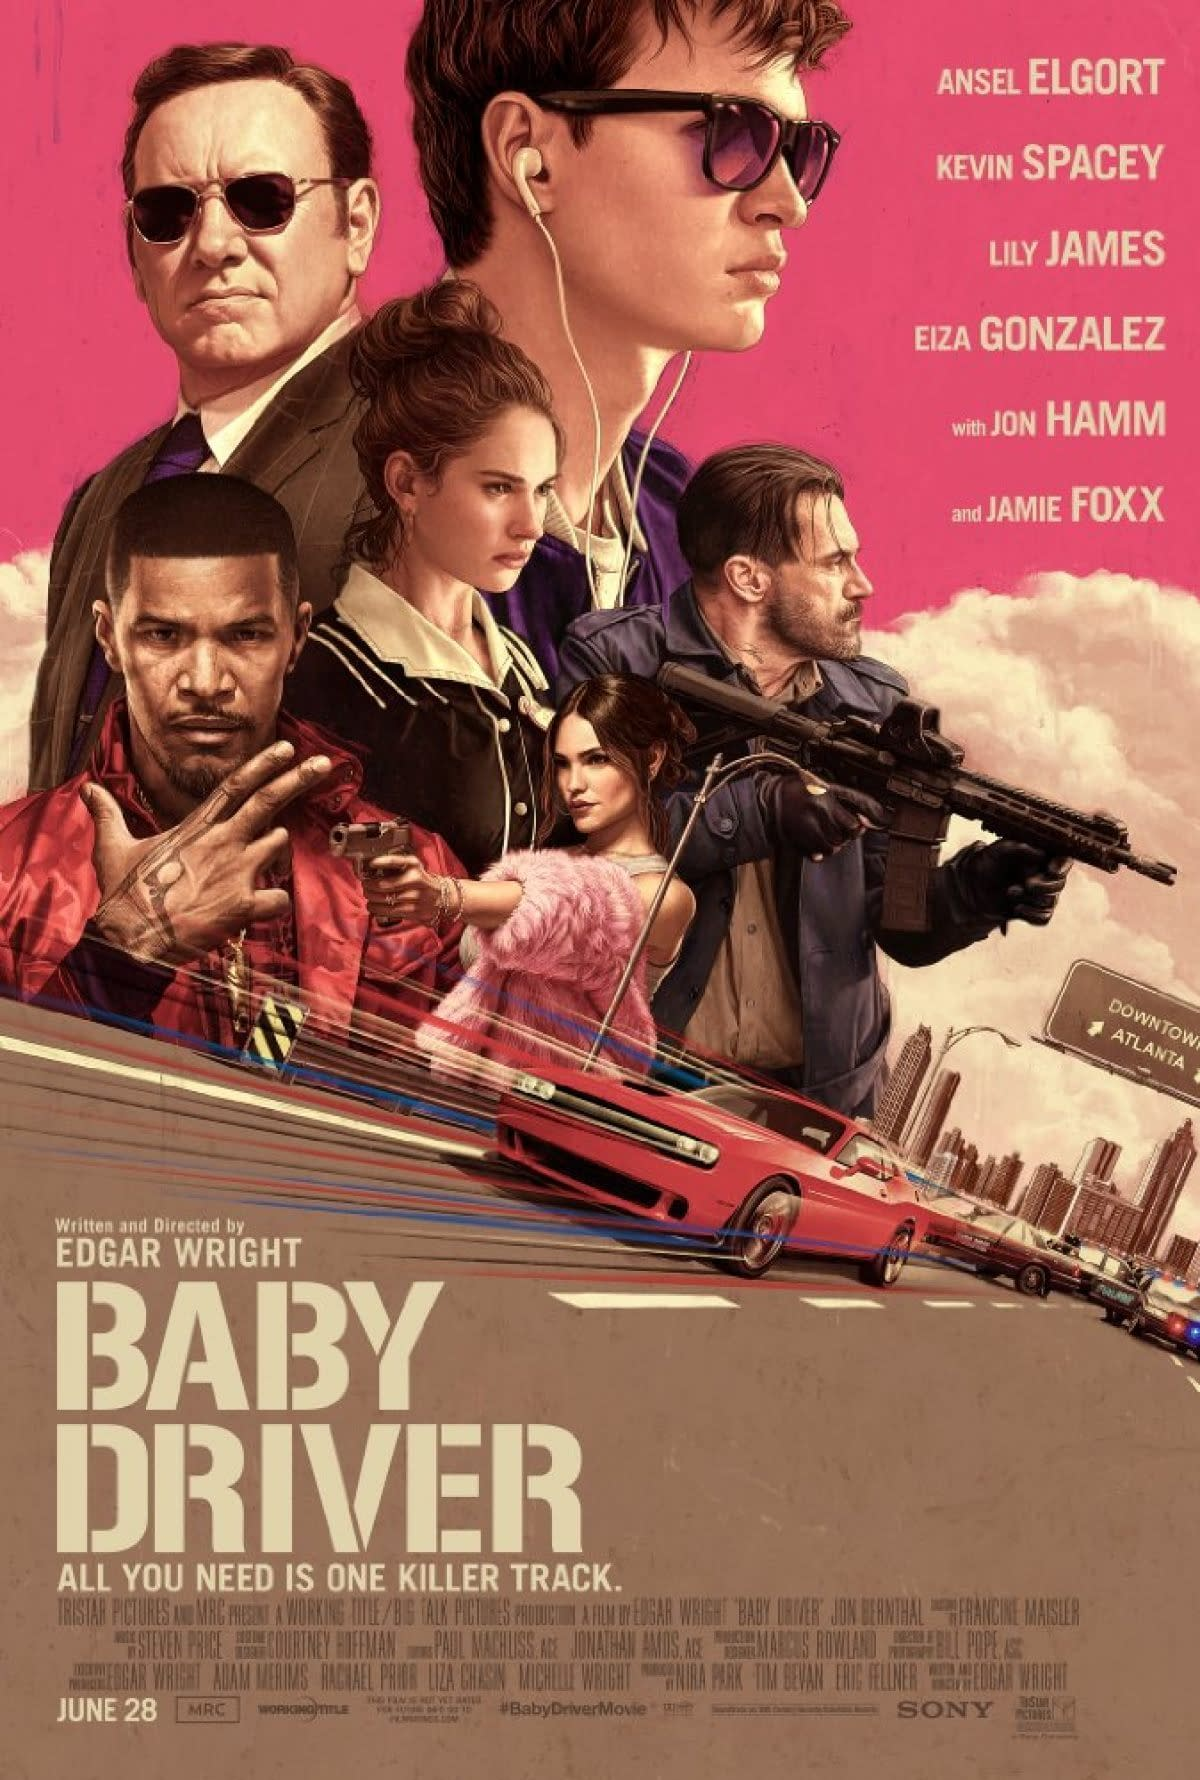 Edgar Wright Thrilled With Baby Driver's Success For Altruistic Reasons